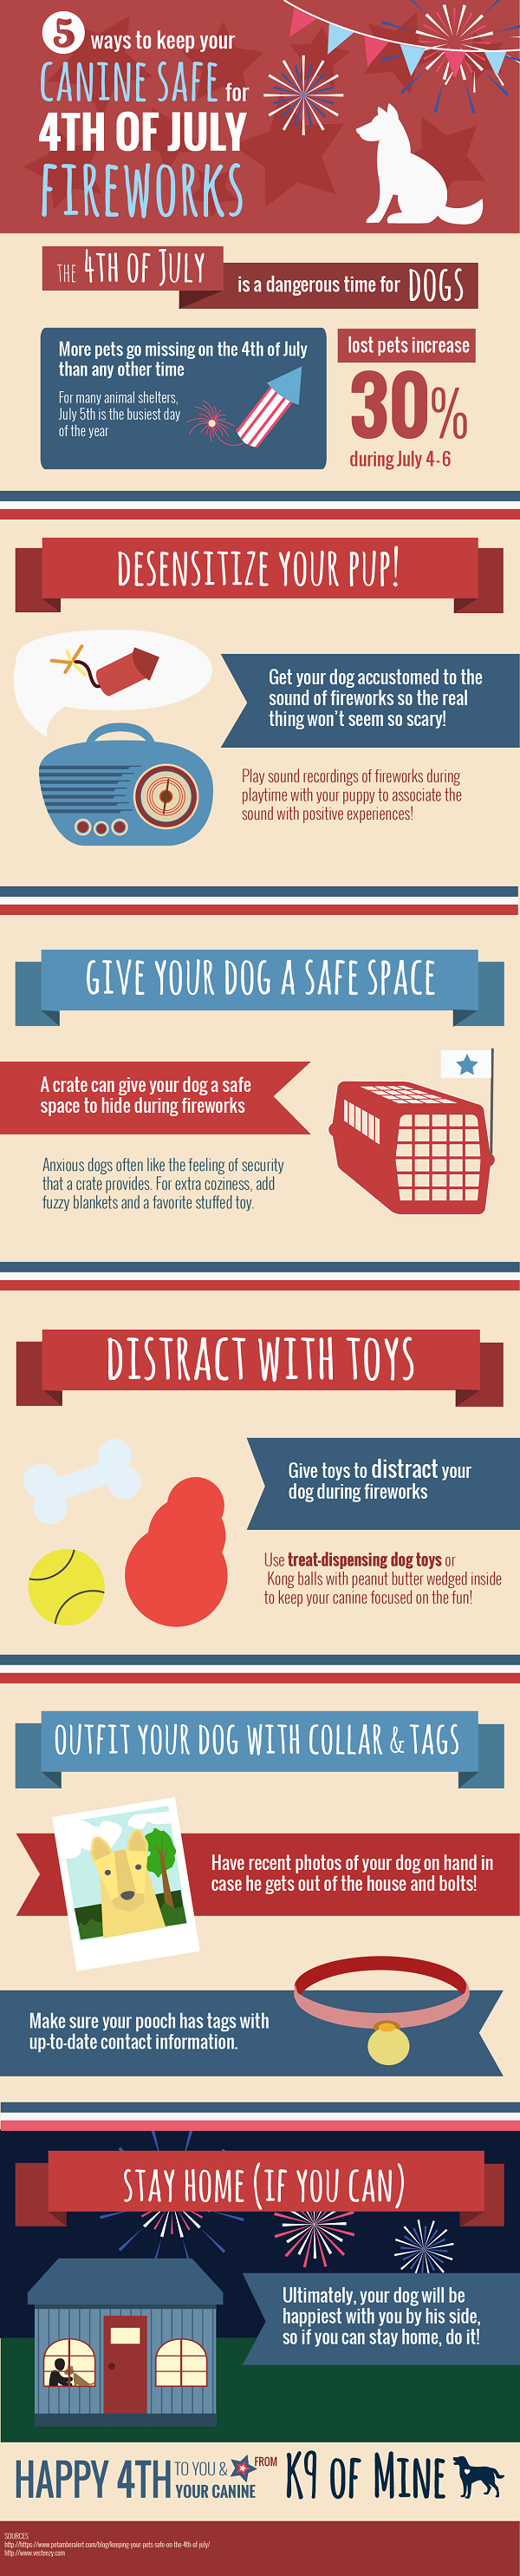 Infographic 5 Tips To Keep Dogs Safe 4th of July